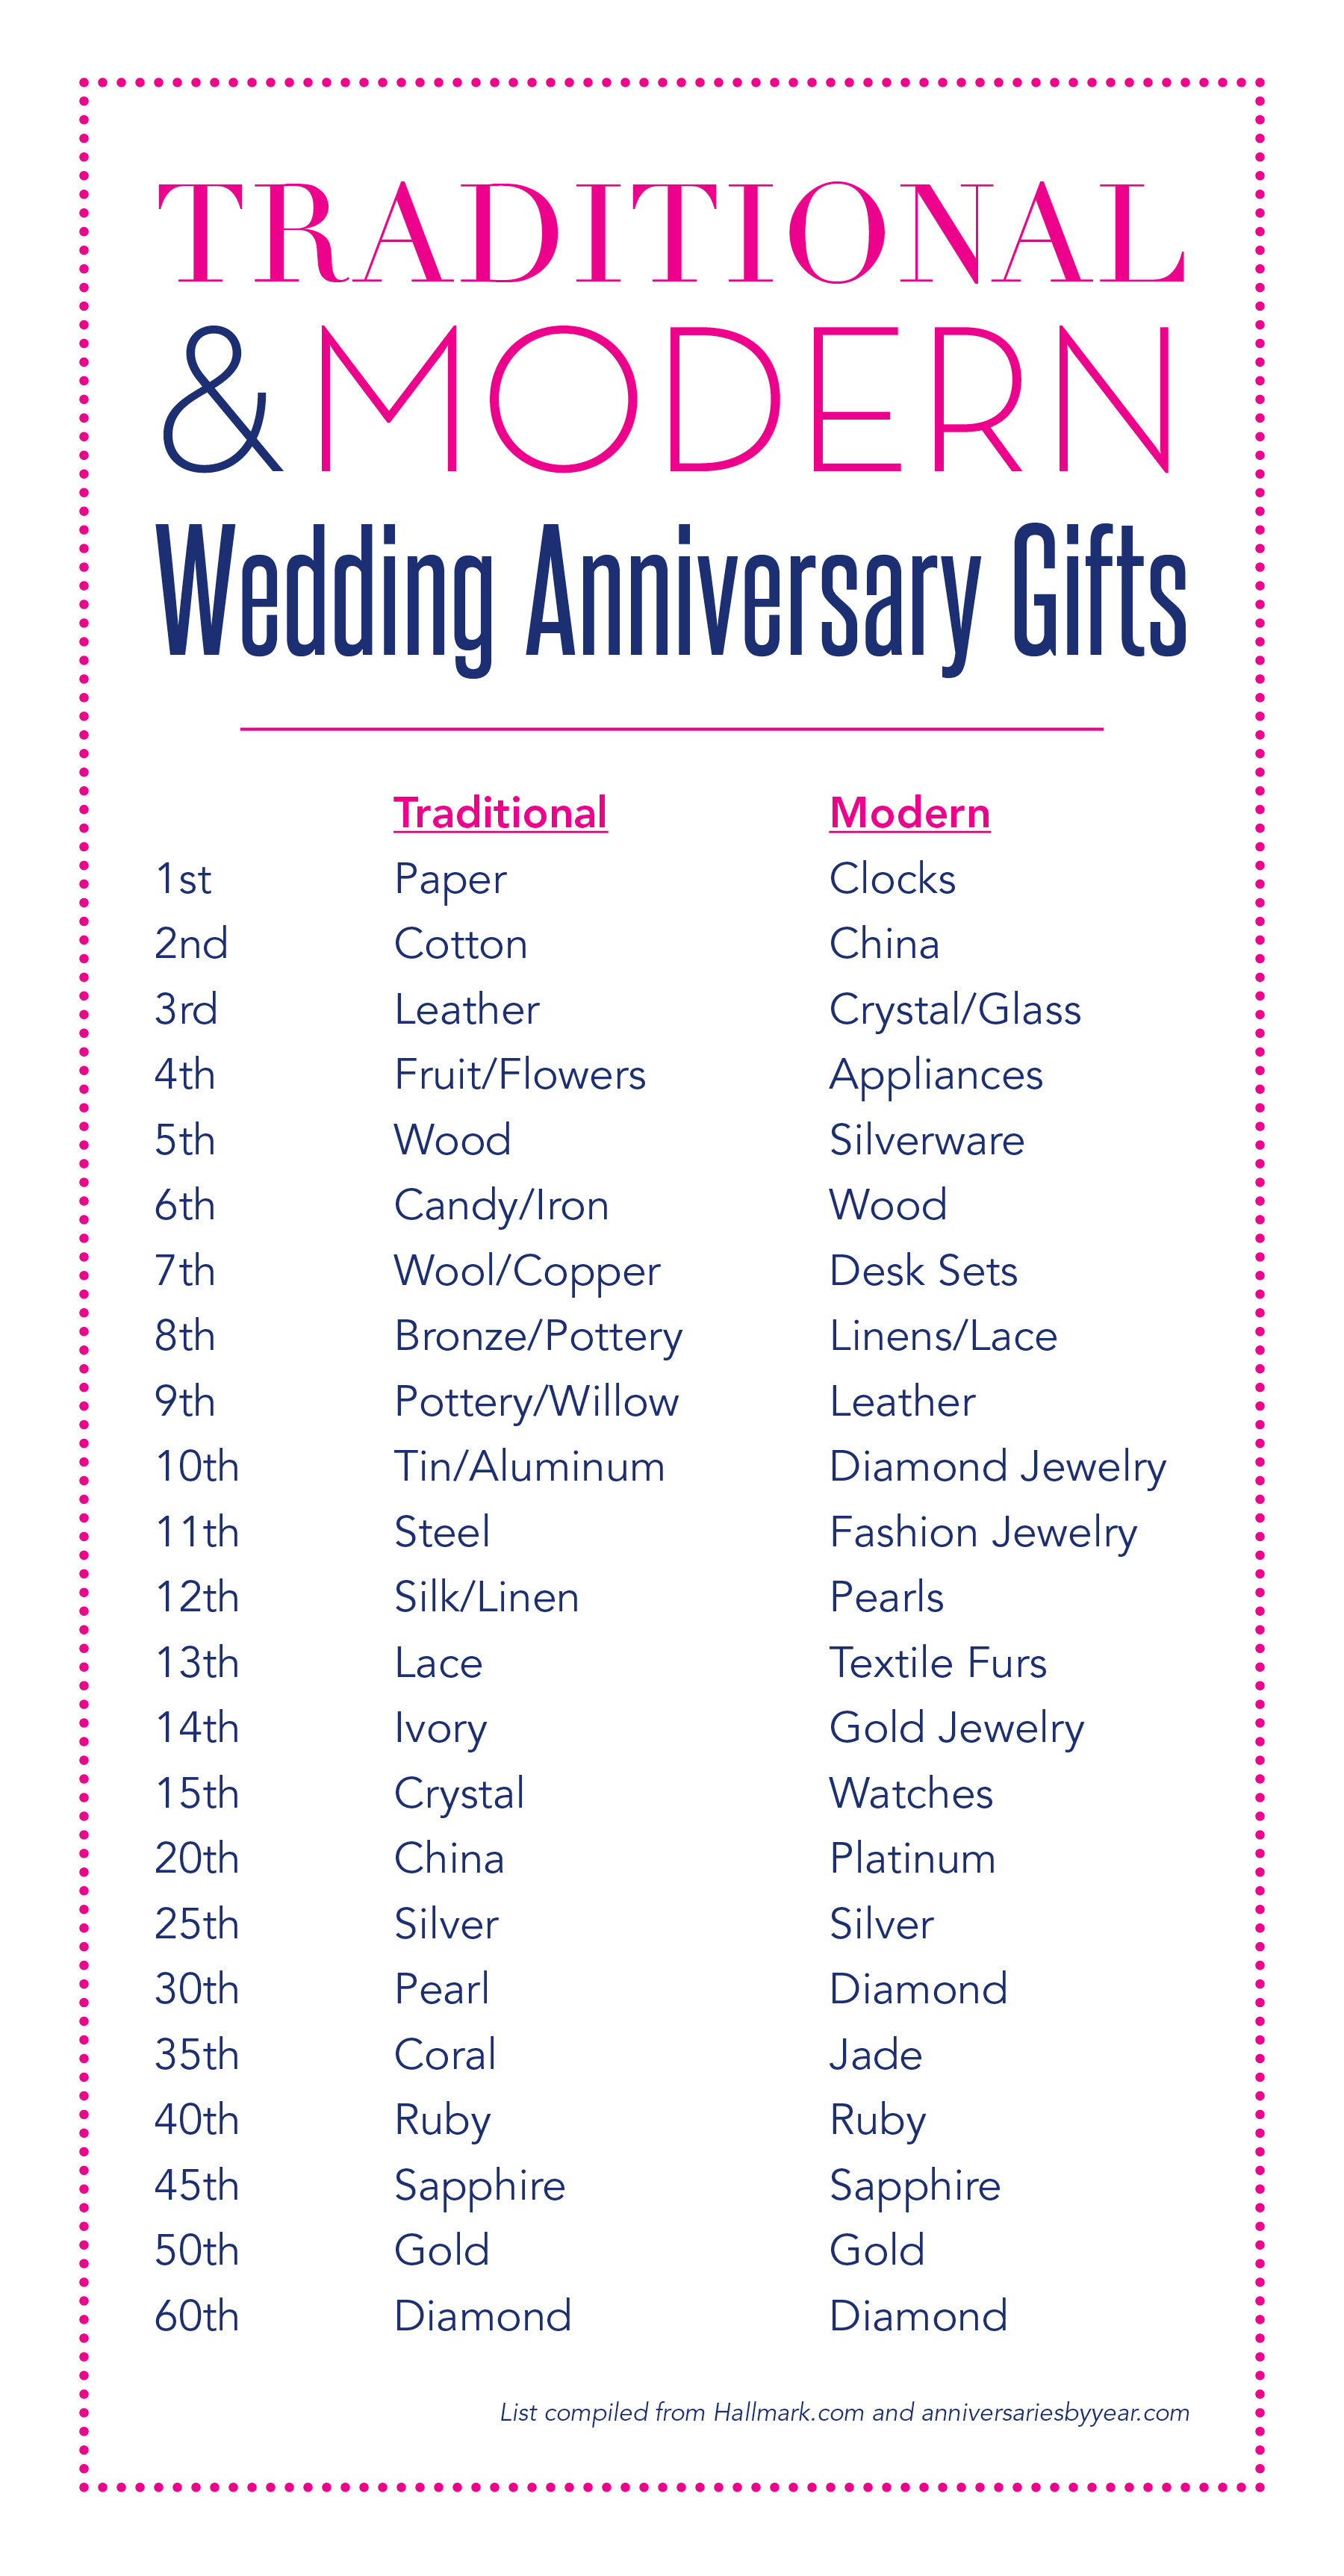 9 Year Wedding Anniversary Gift For Husband : wedding anniversary gifts (traditional & modern)